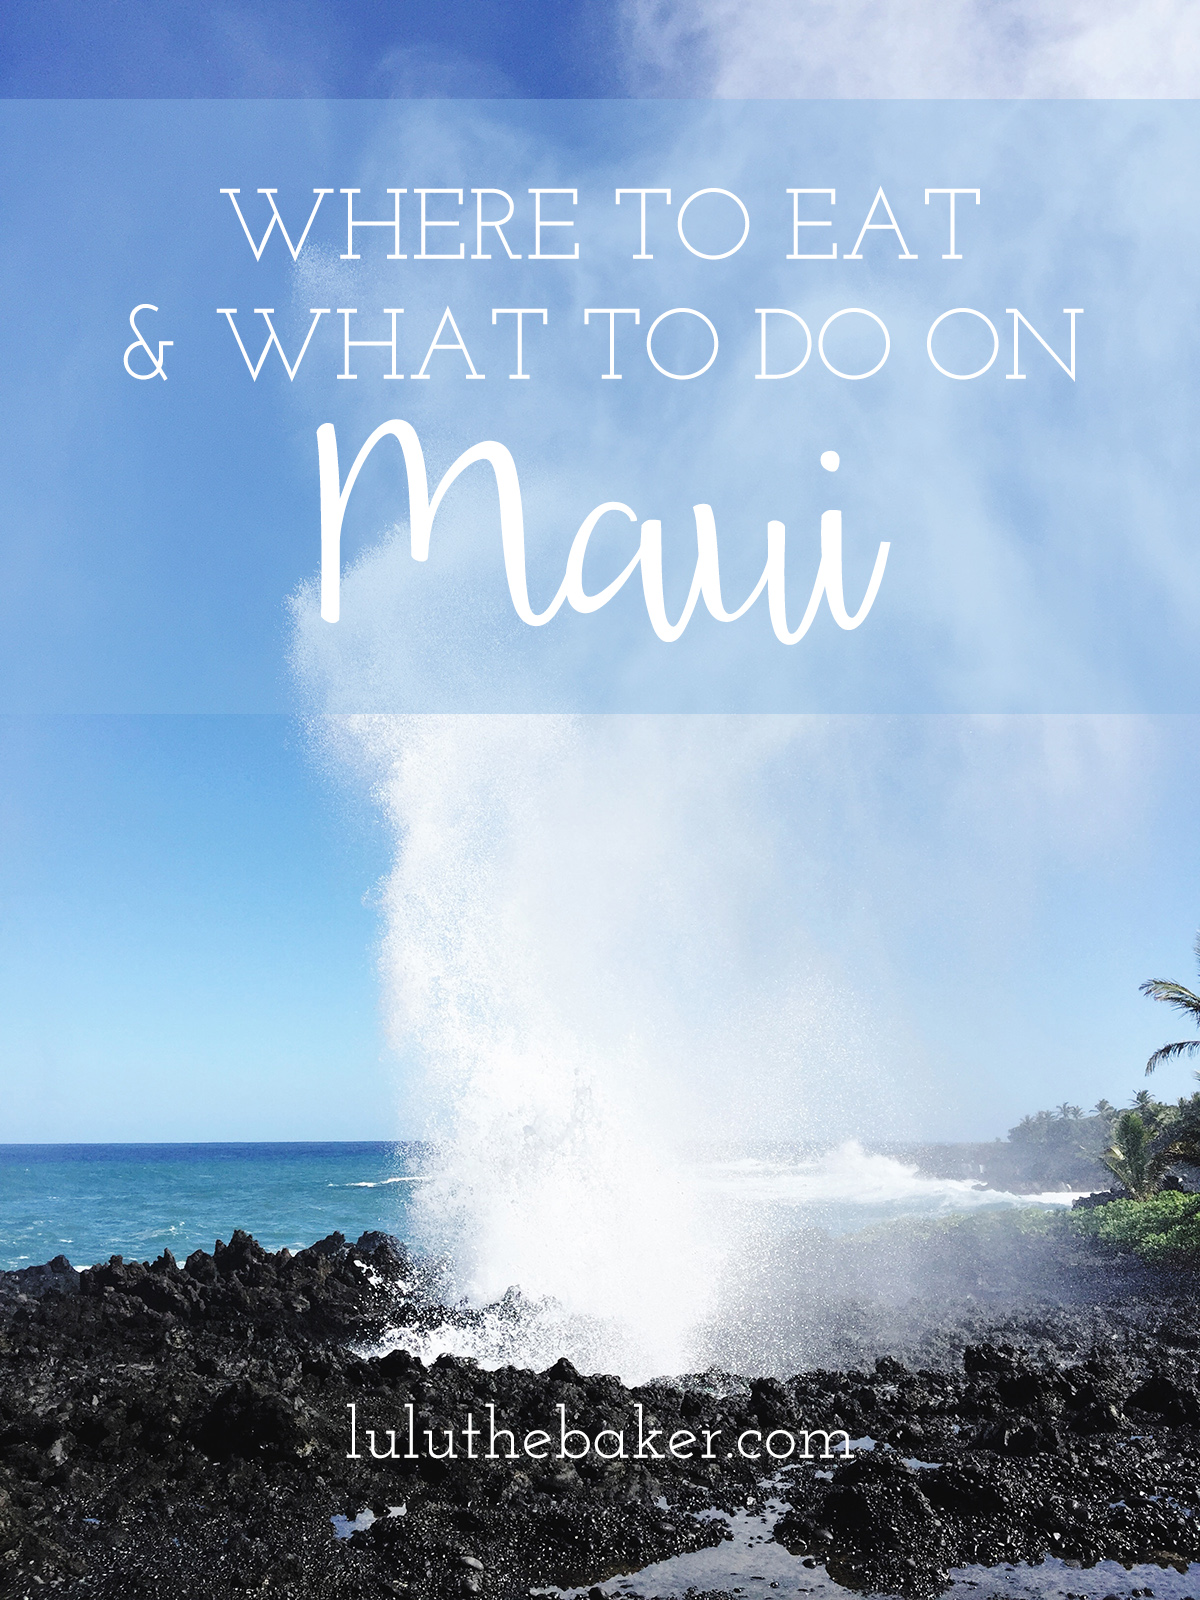 Need to know where to eat and what to do on Maui? Read my recommendations on the blog!